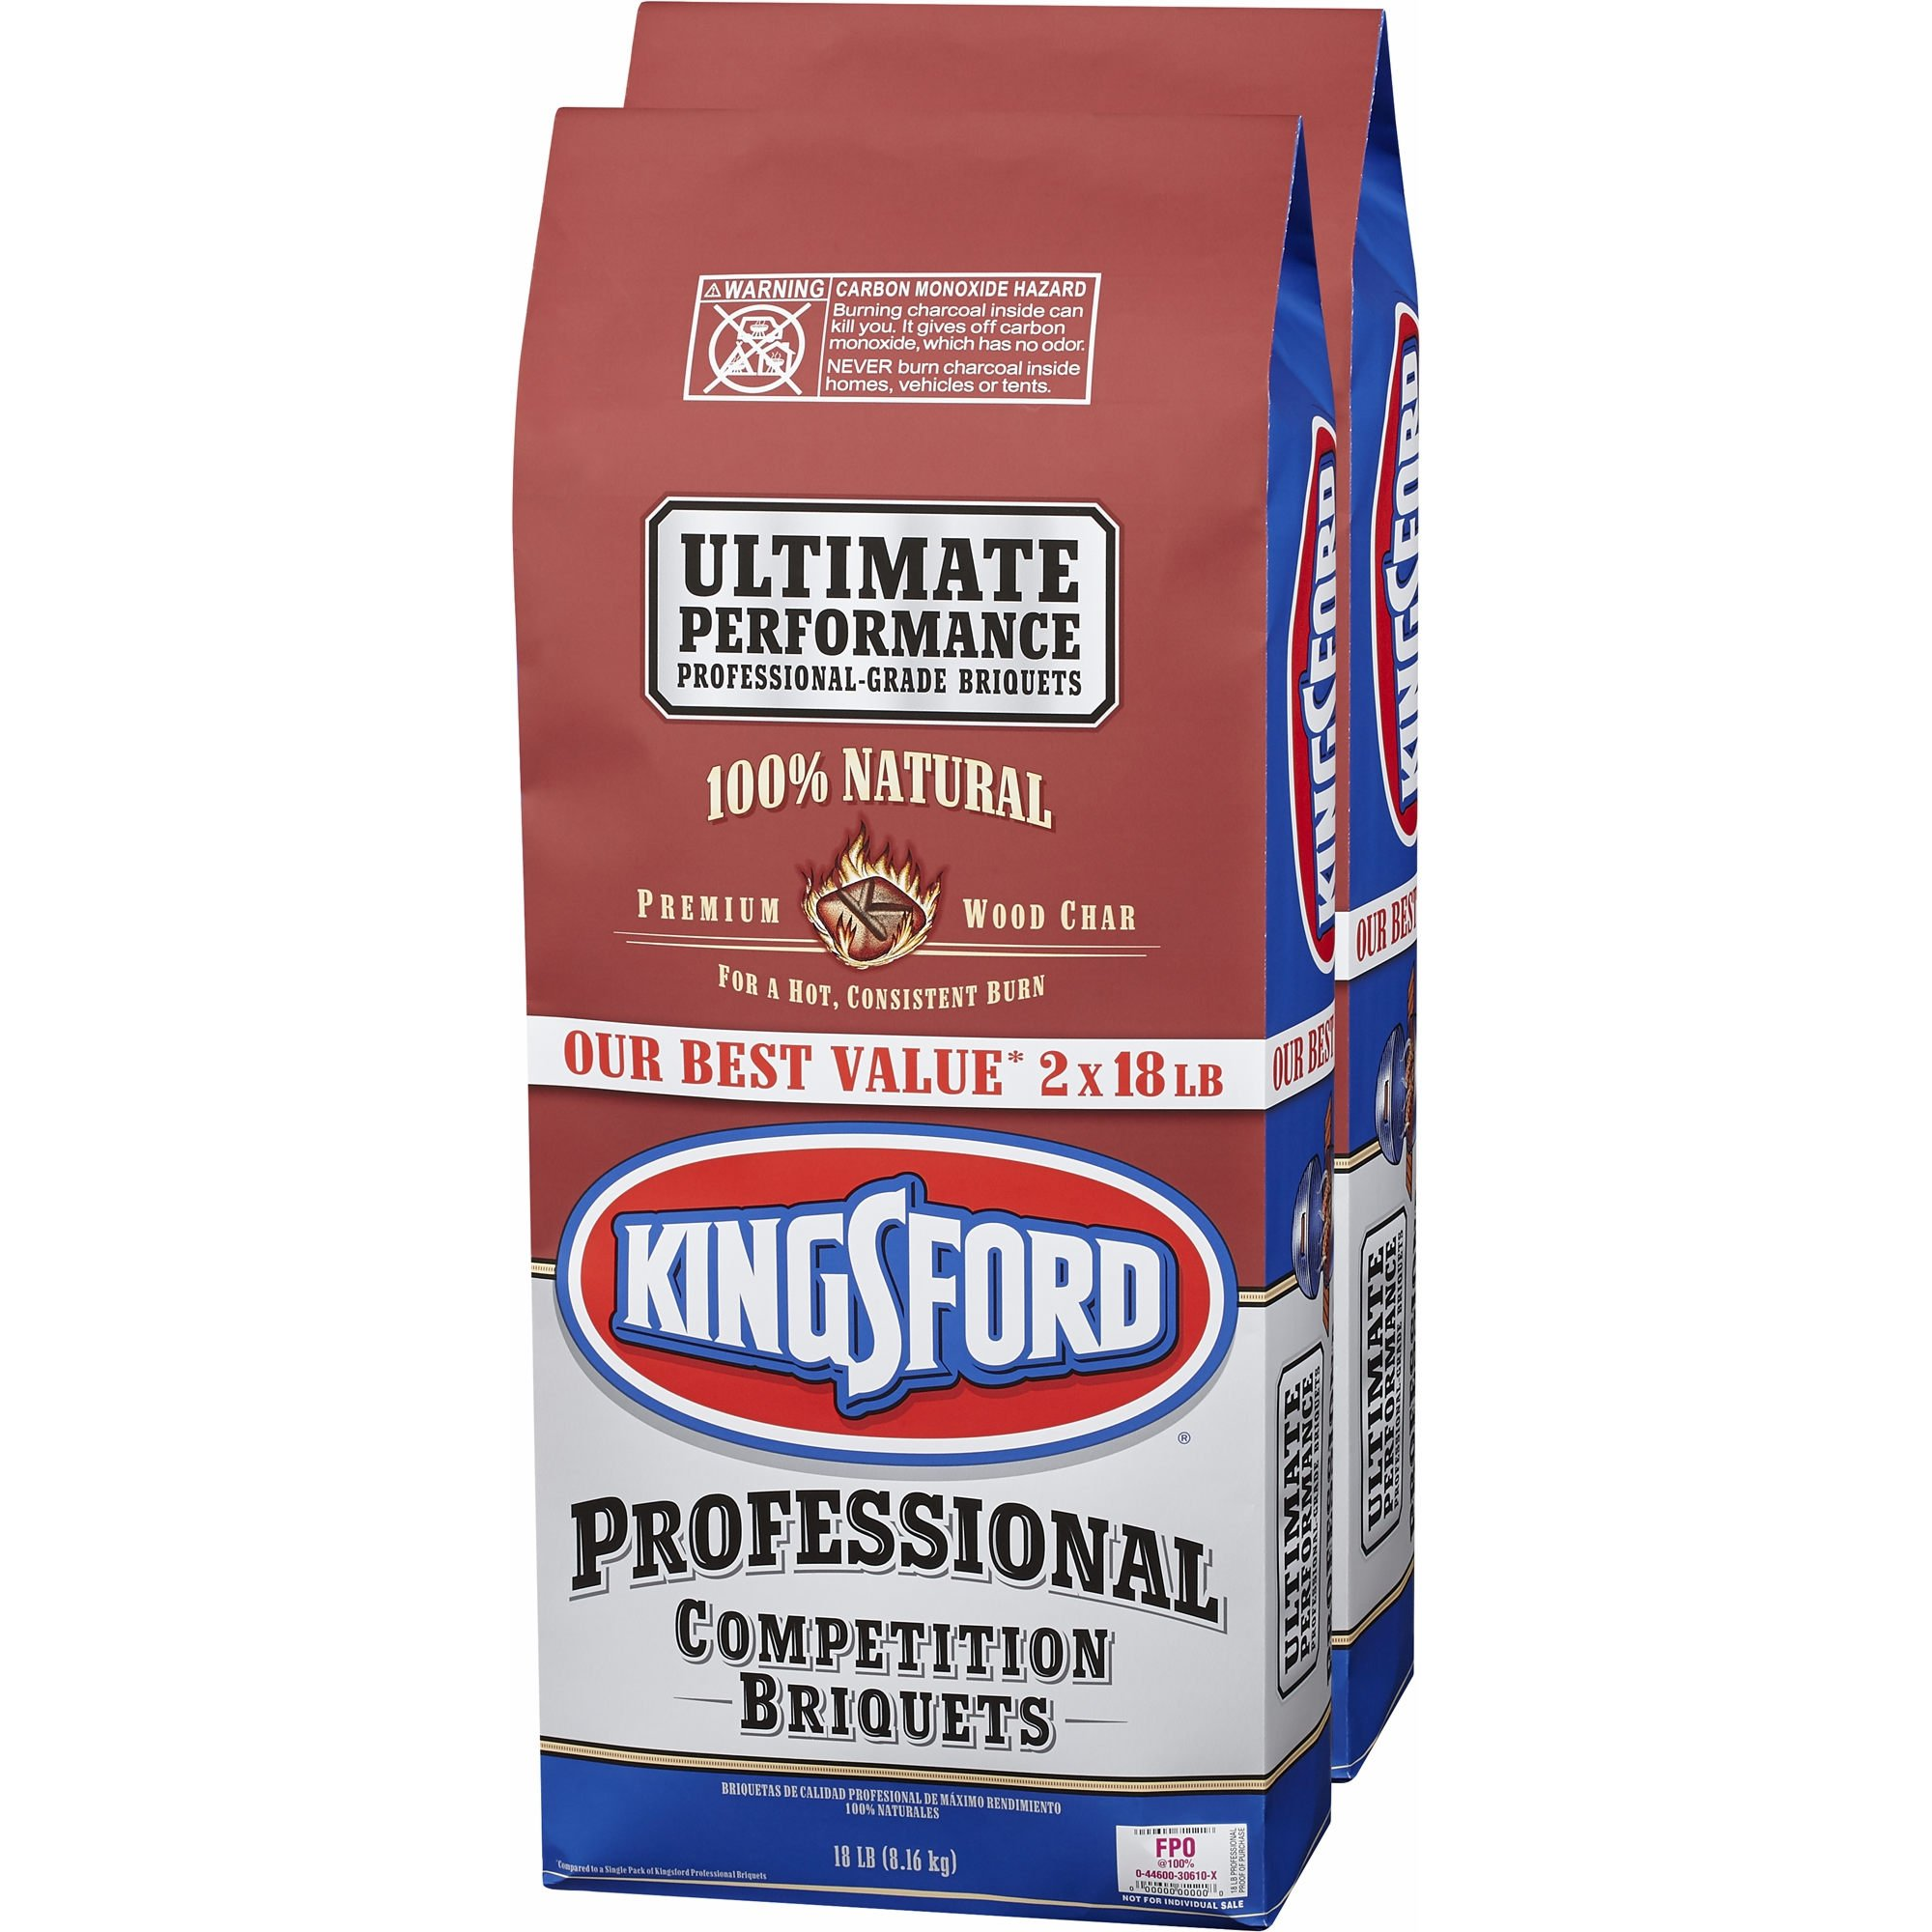 Kingsford Professional Competition Briquettes 2 Pack of 18 lb Bags by Kingsford